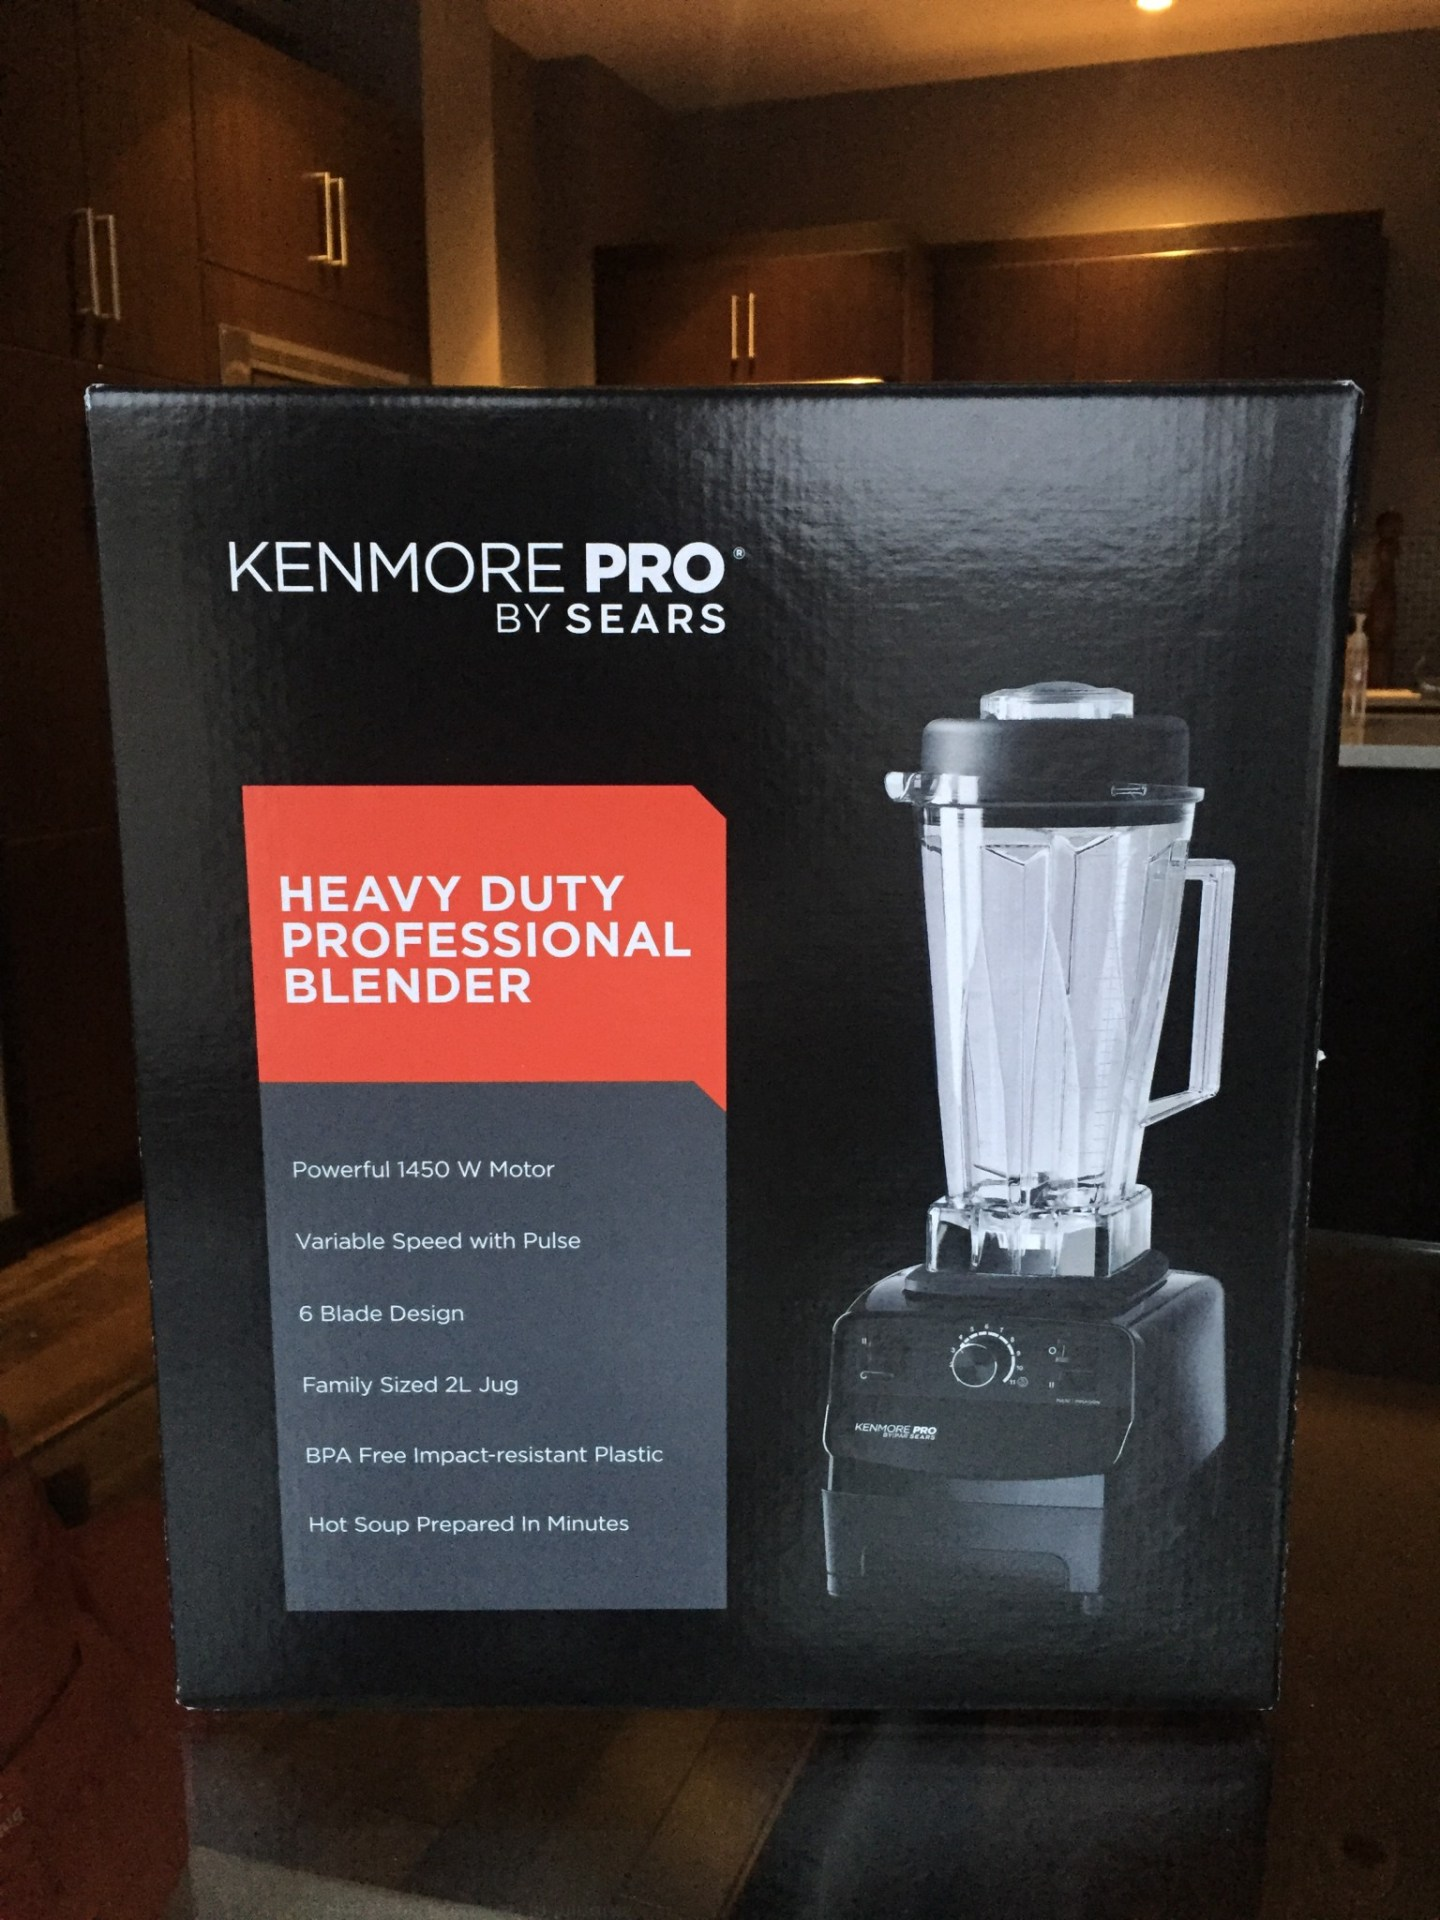 Meal Time Made Easy with the Kenmore Pro Blender